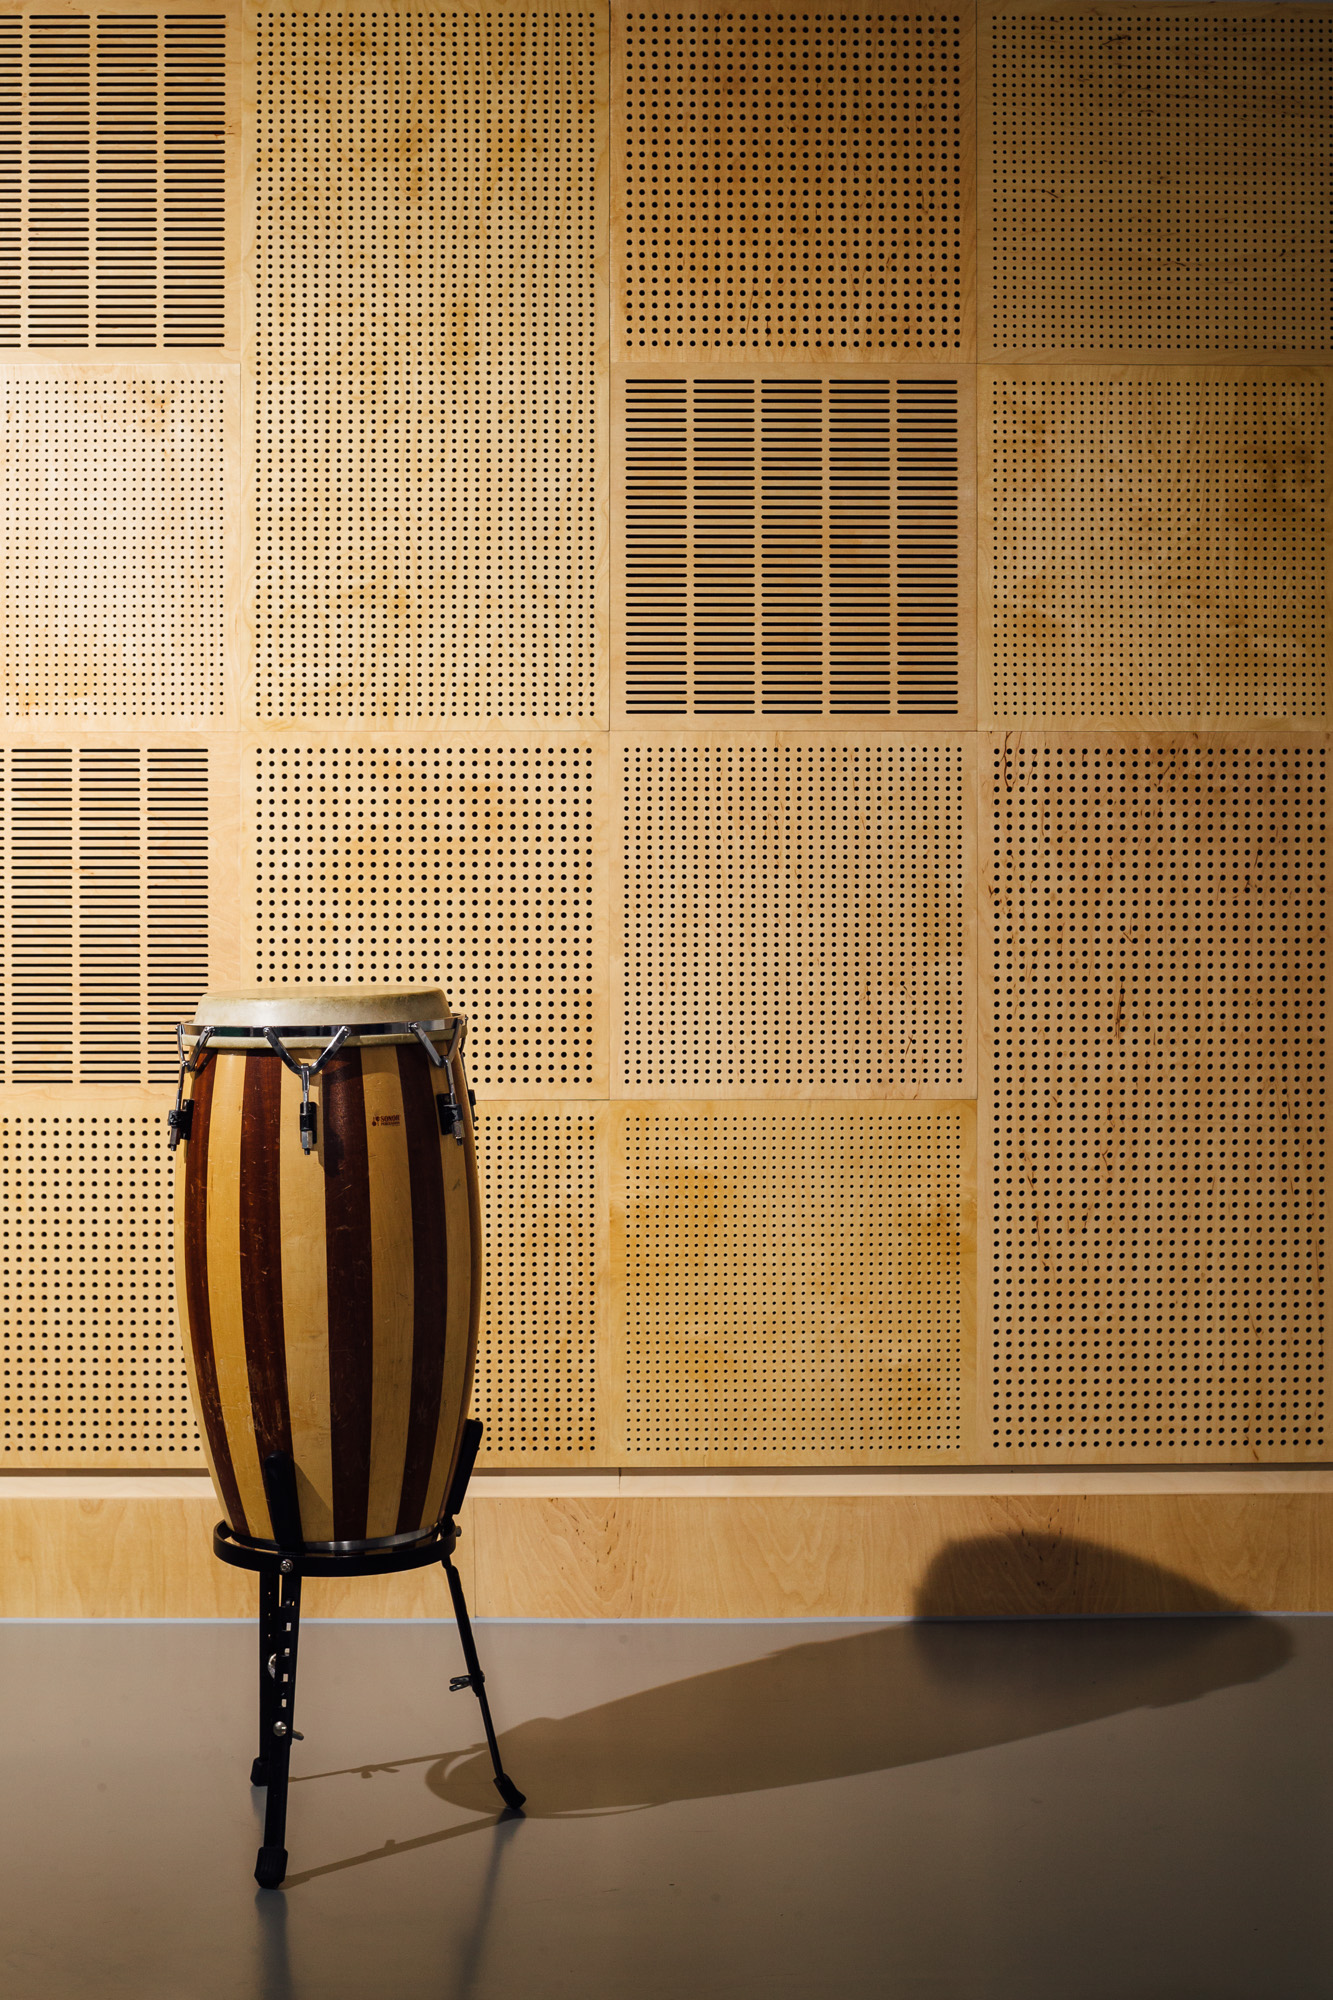 Plywood panels perform well with the acoustics necessary for the refurbished music room.